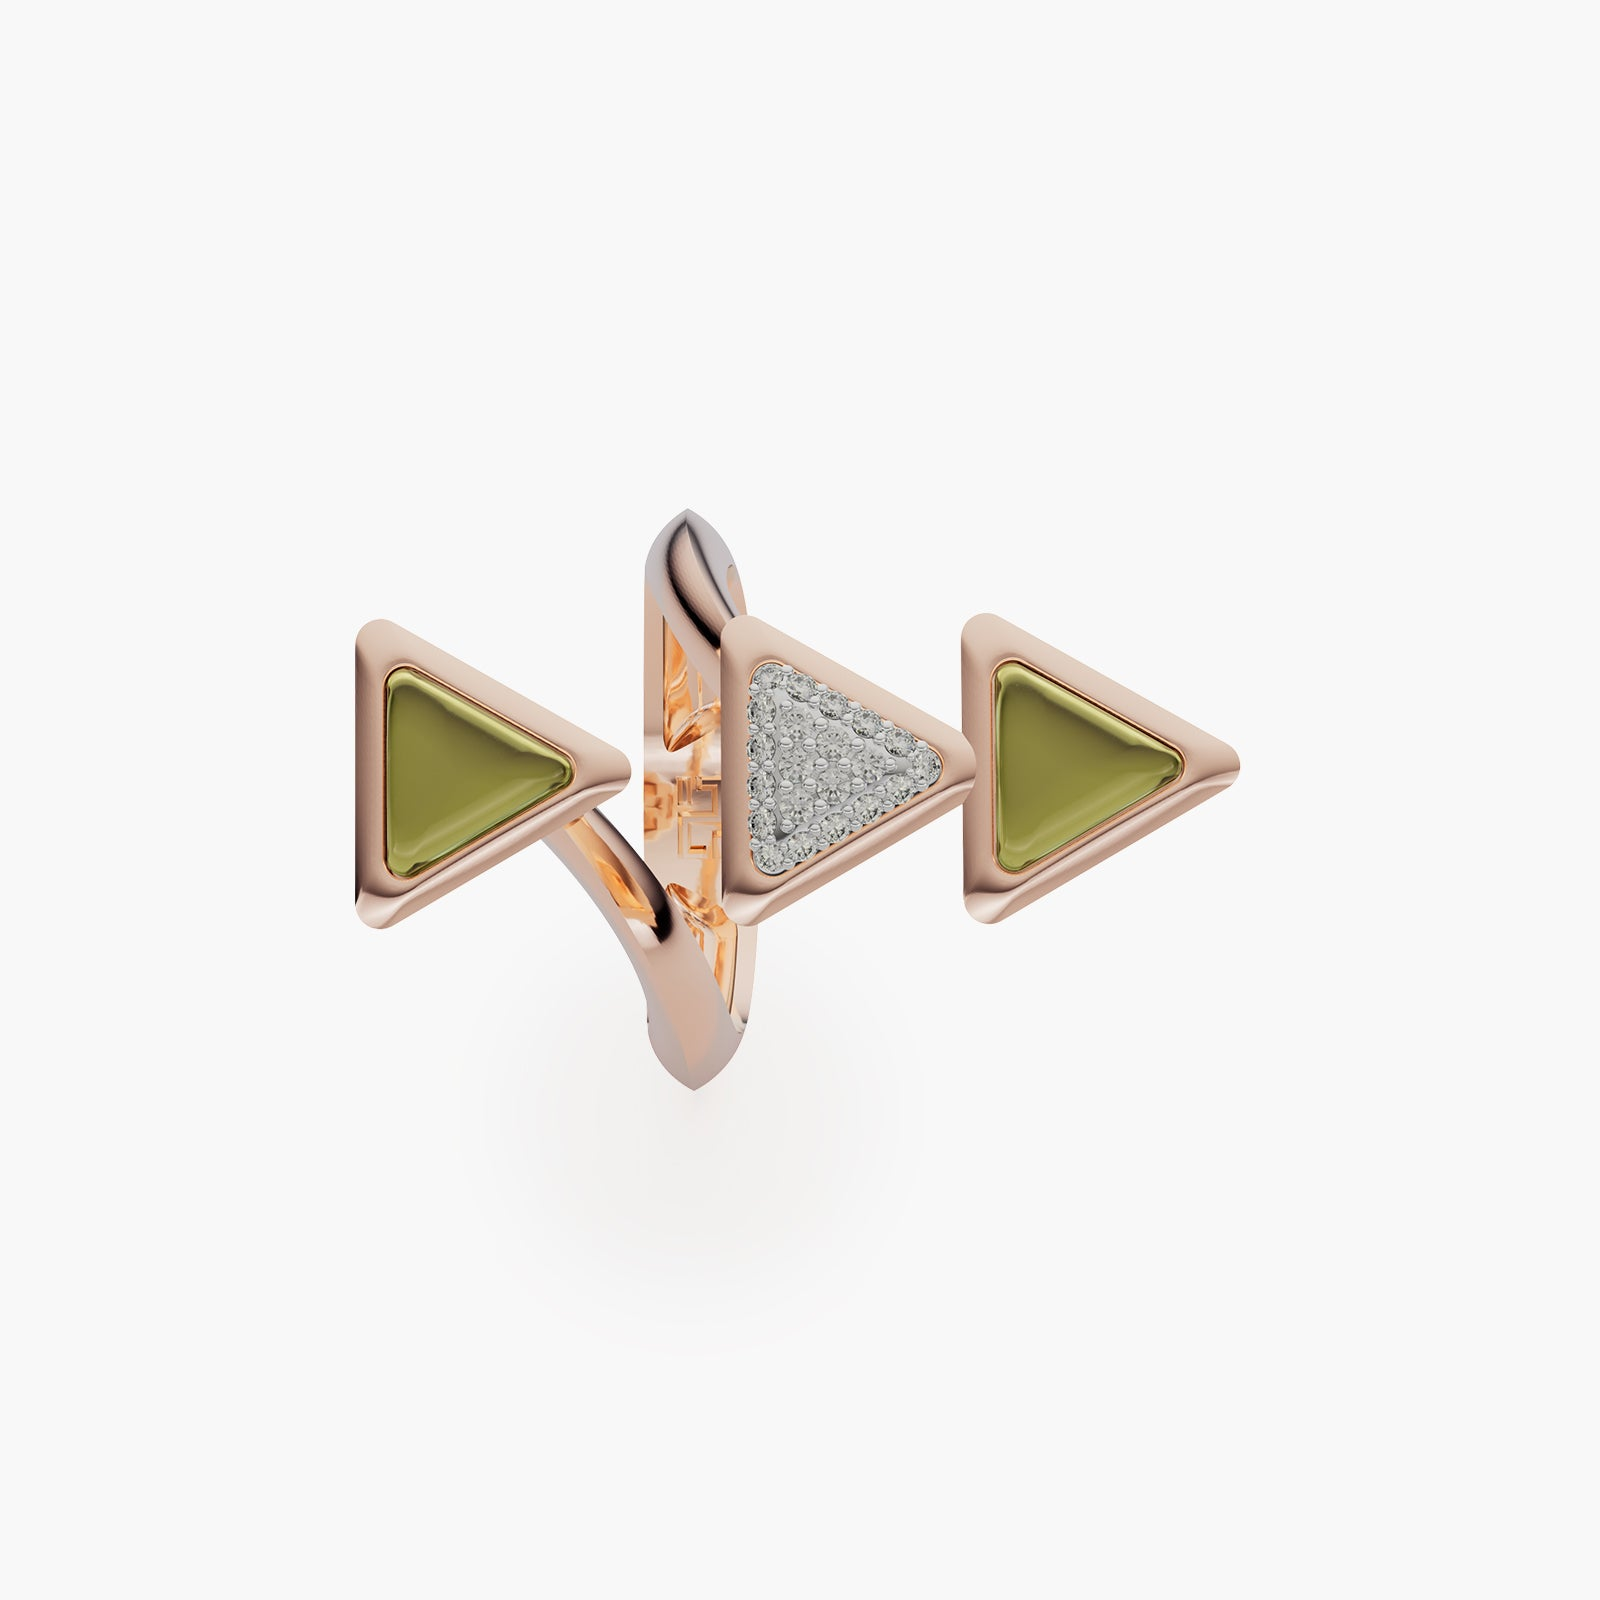 Ring Dove Vai Forward Exquisite Rose Gold Green Tourmaline and Diamonds